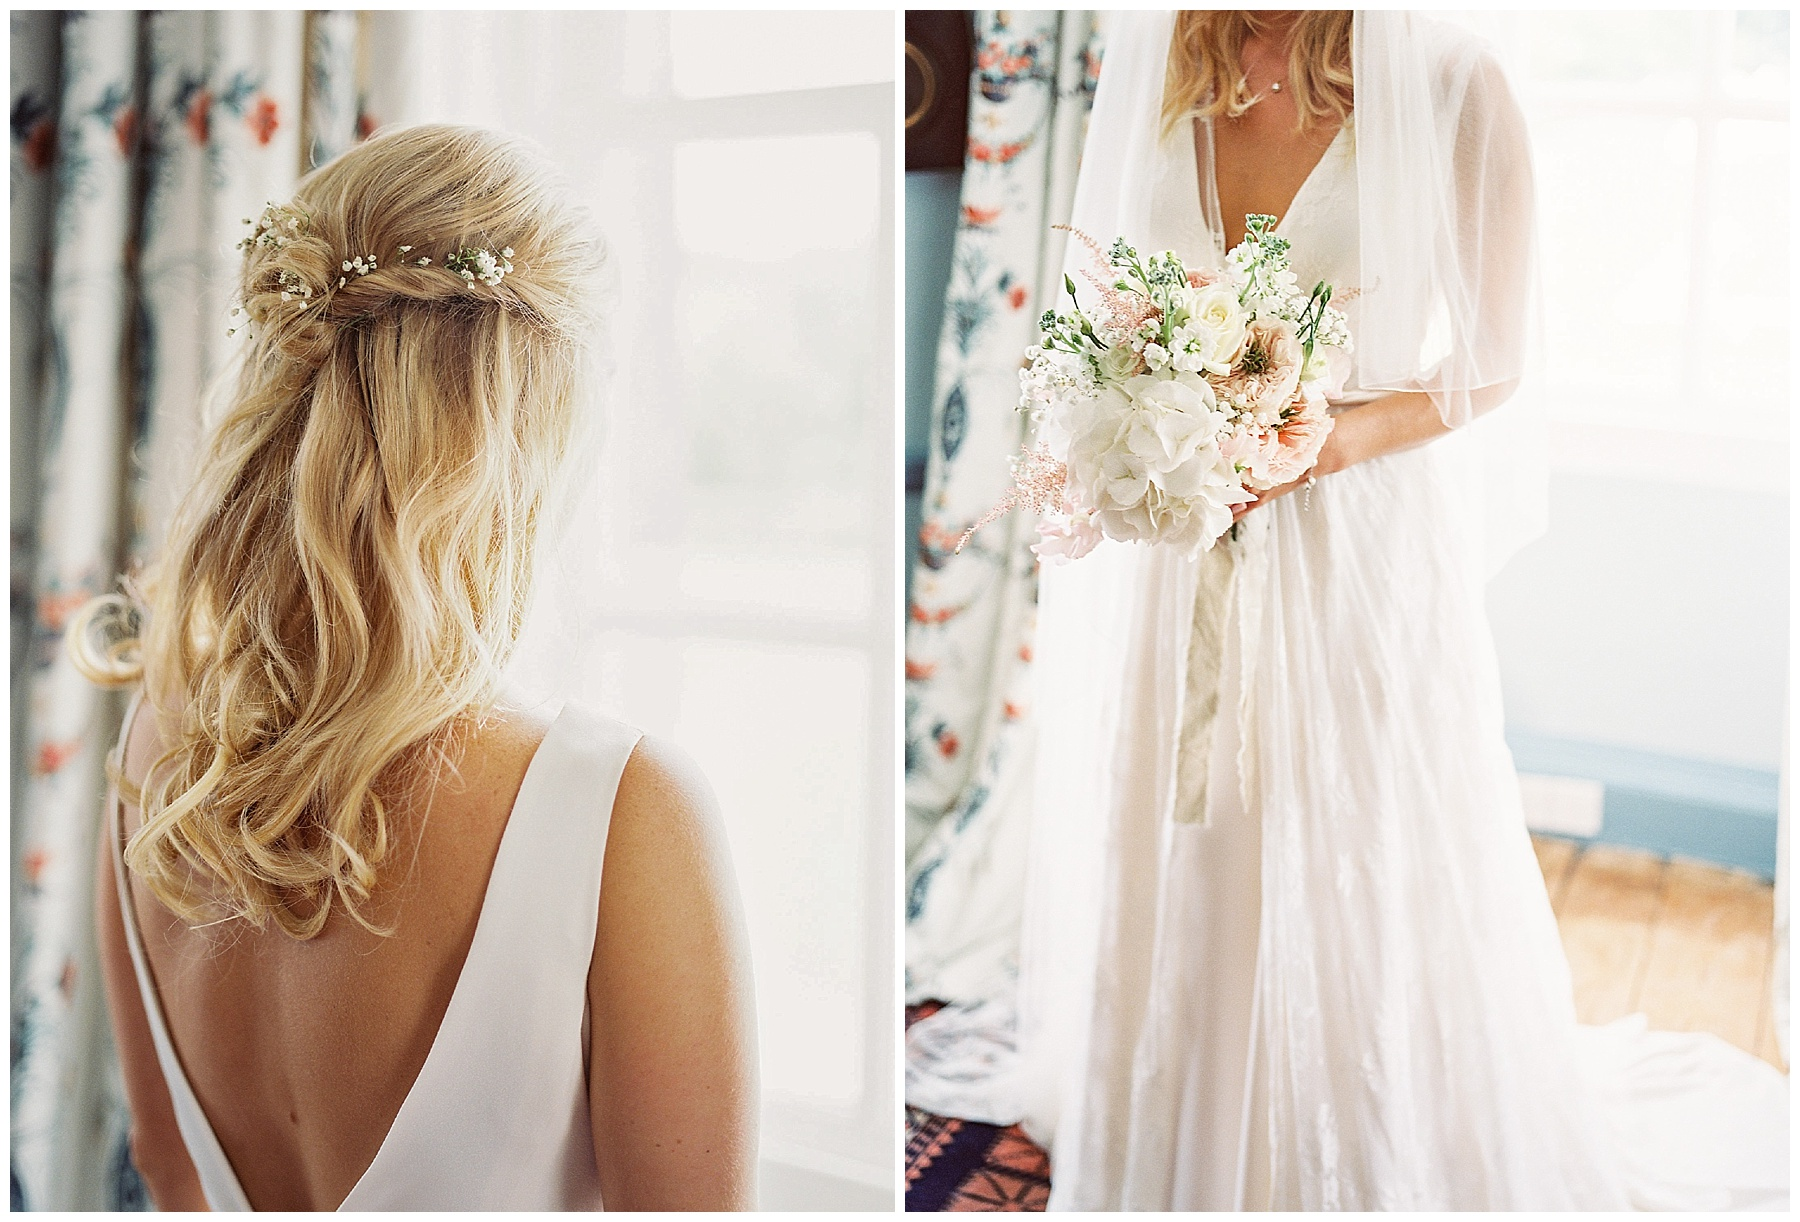 blonde and curled wedding hair style with charlie brear gown